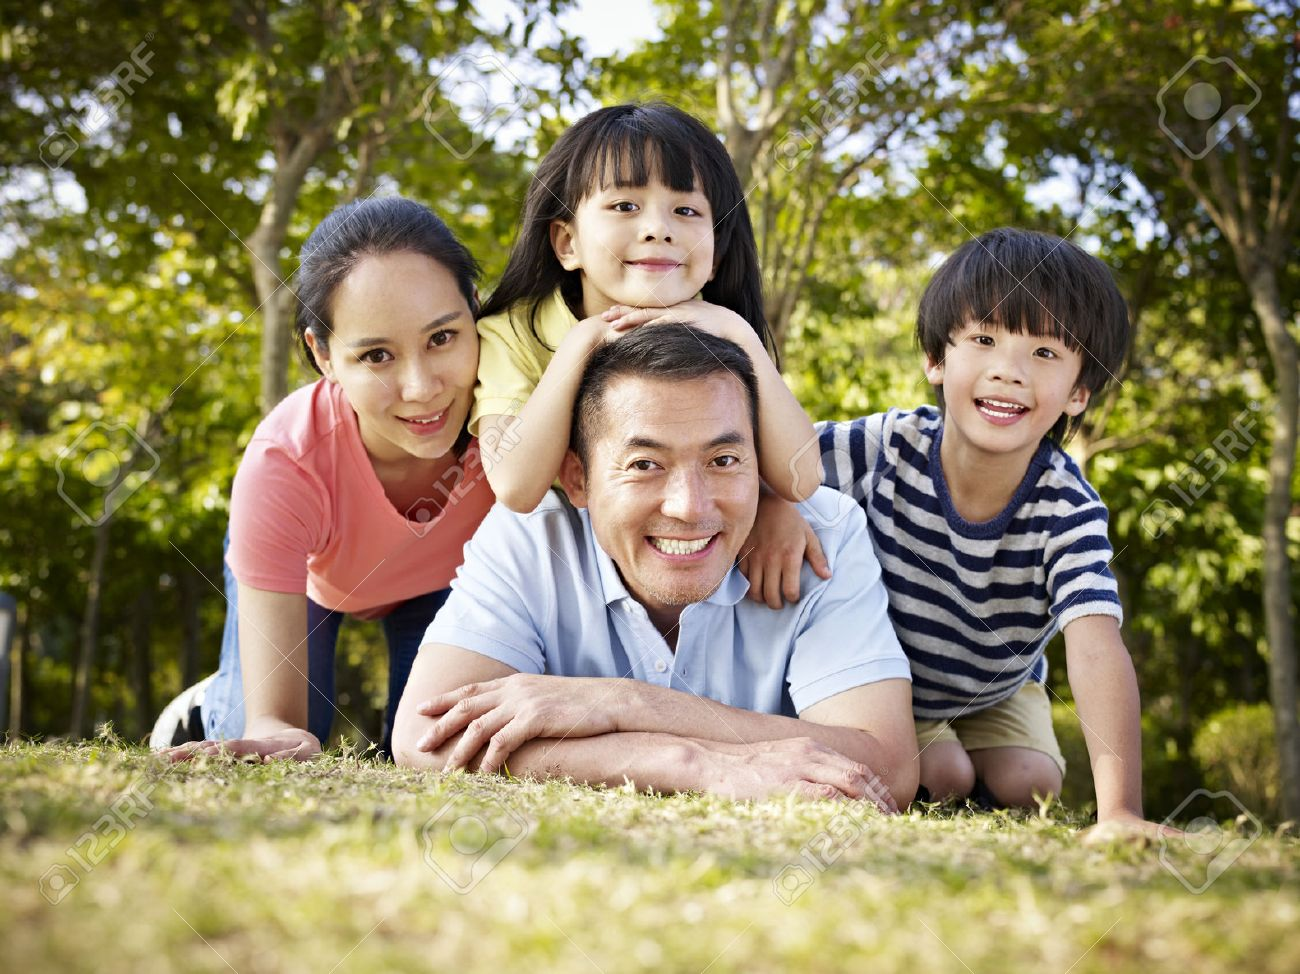 Family Photos Family With Two Children Stock Photos Royalty Free Family With